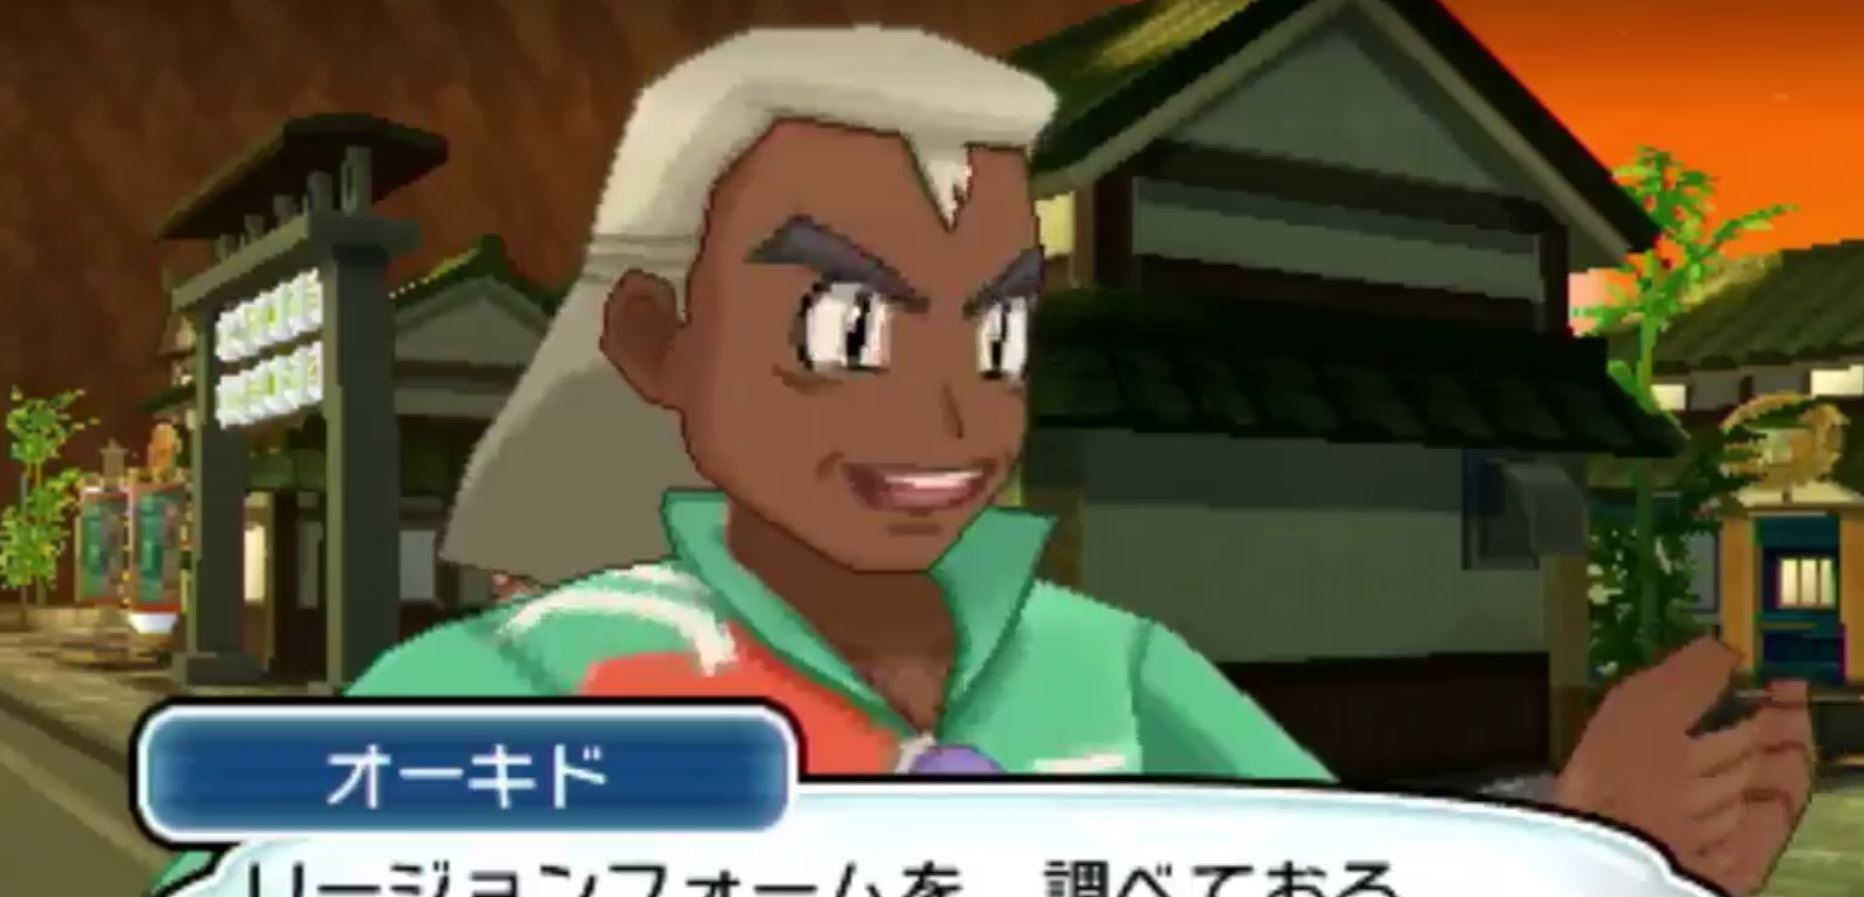 Hmm, this Sun and Moon character looks mighty familar